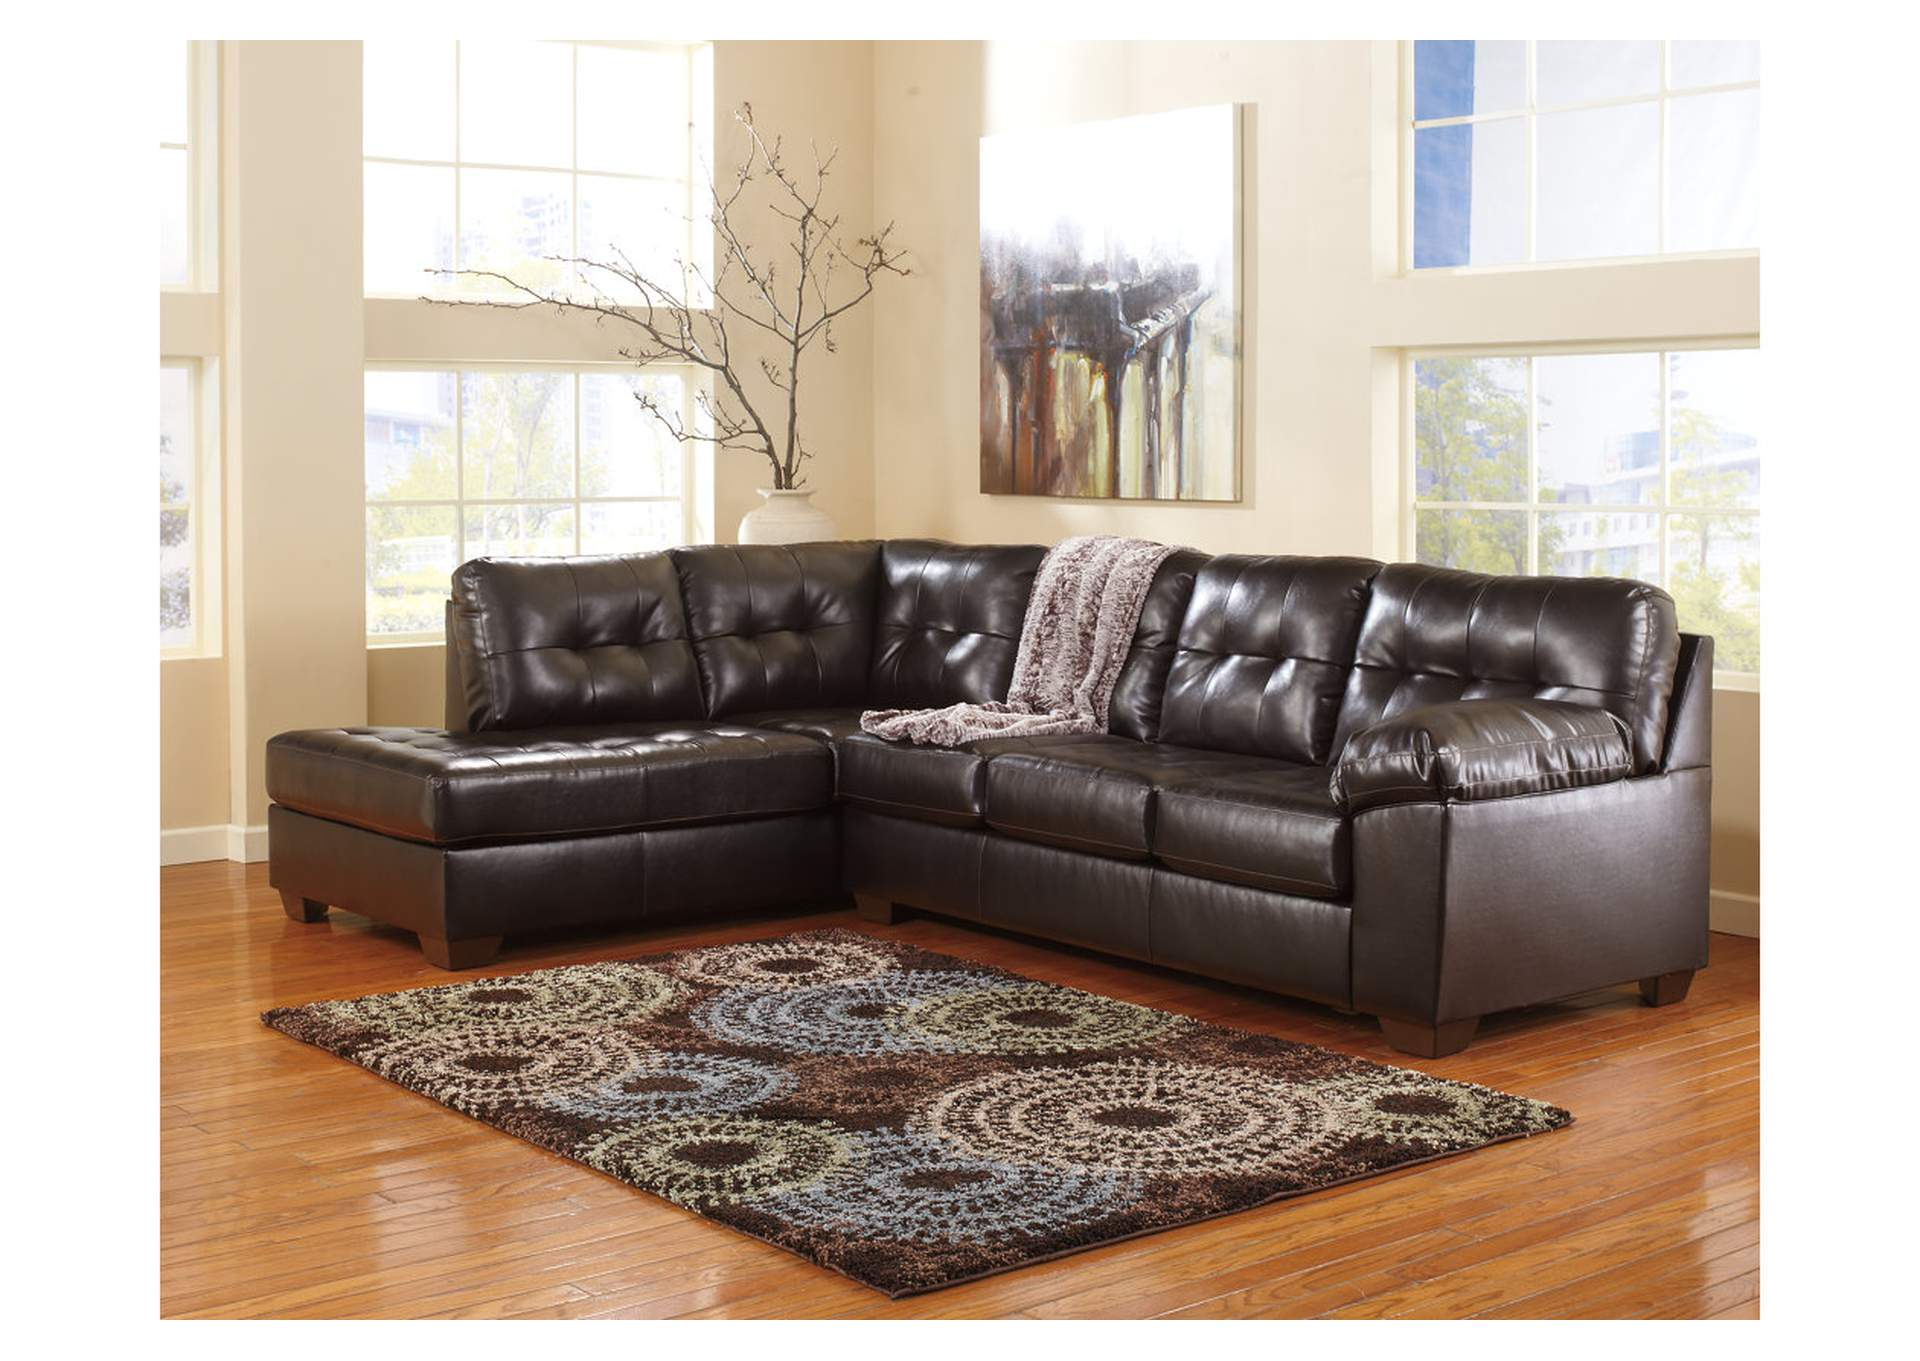 Alliston DuraBlend Chocolate LAF Chaise Sectional,Signature Design By Ashley